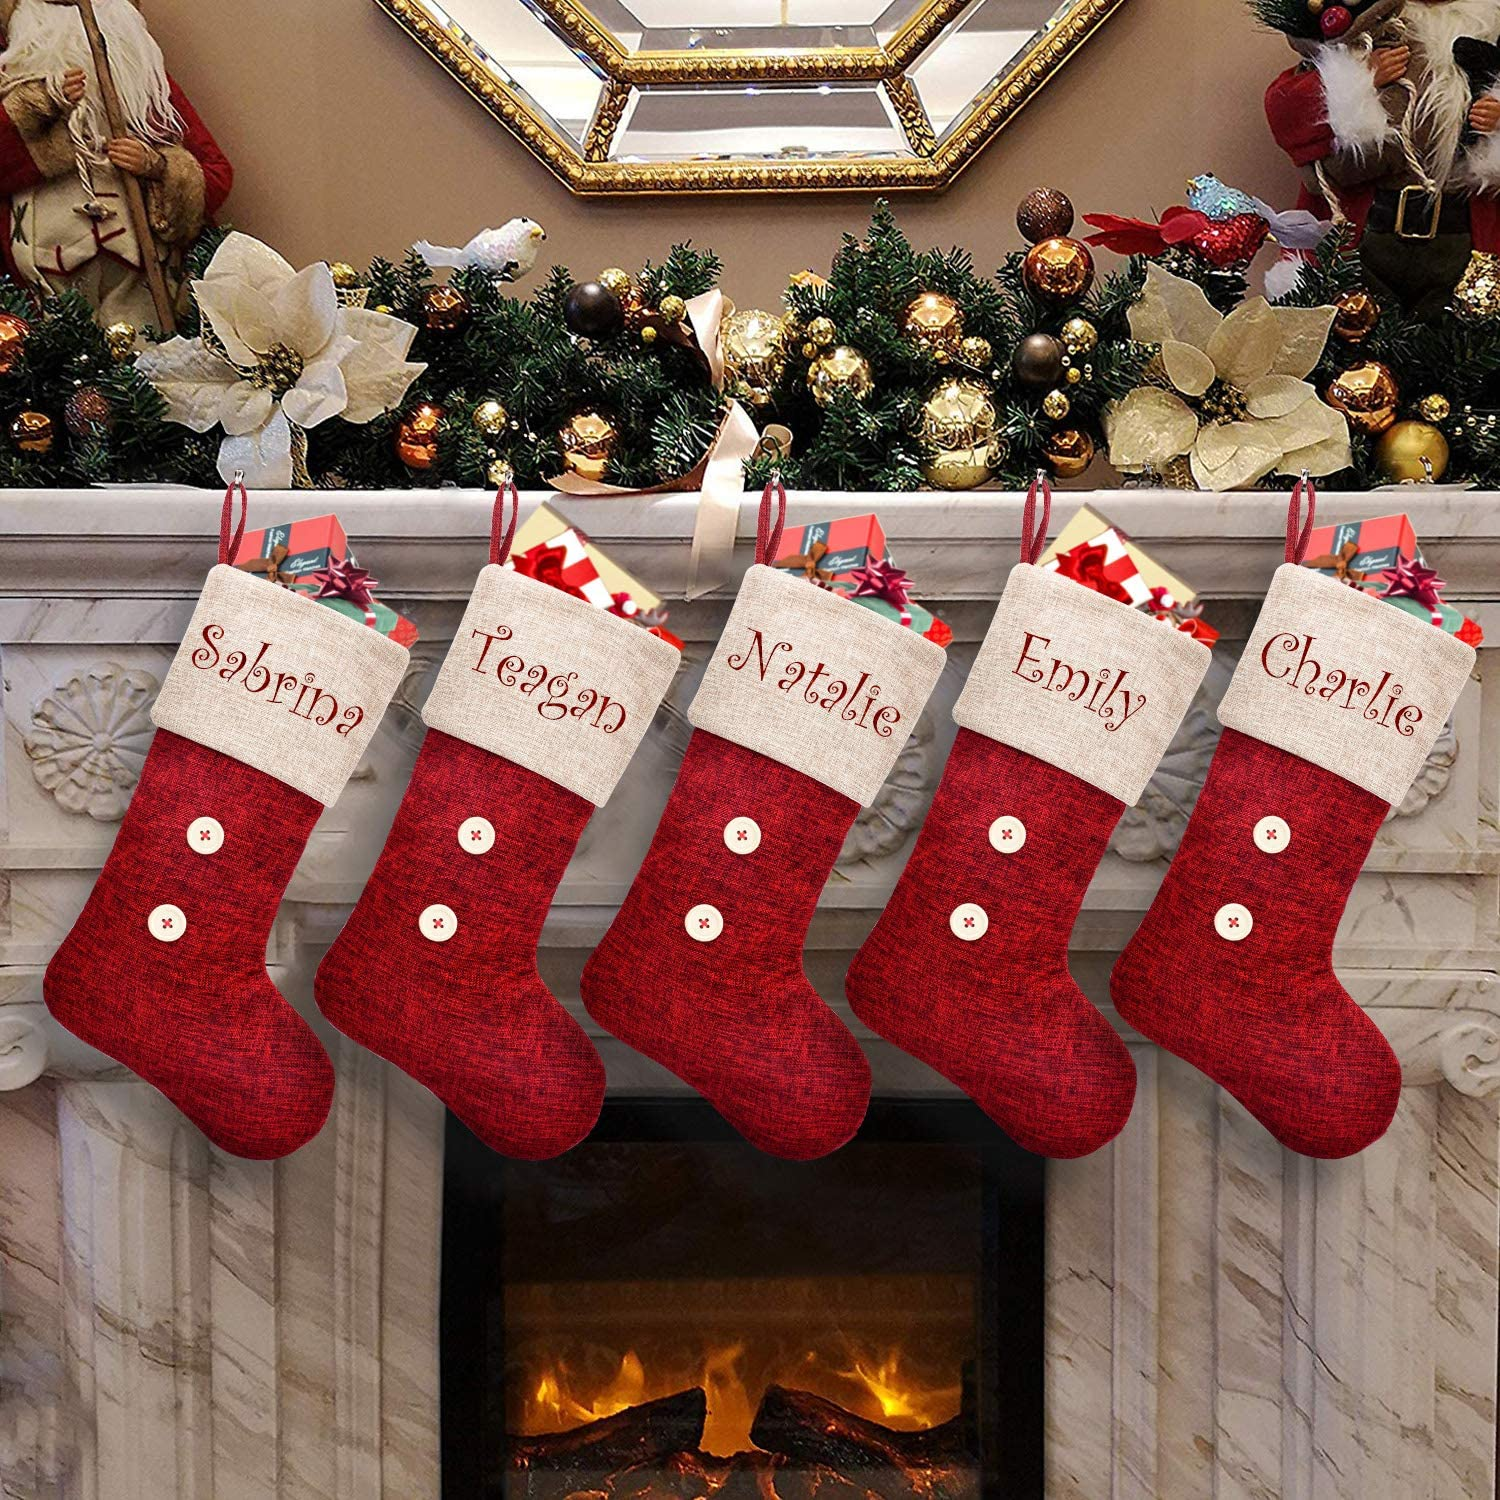 ElegantPark Luxury Personalized Christmas Stockings Year-end annual account 5 Red Pack Burlap C